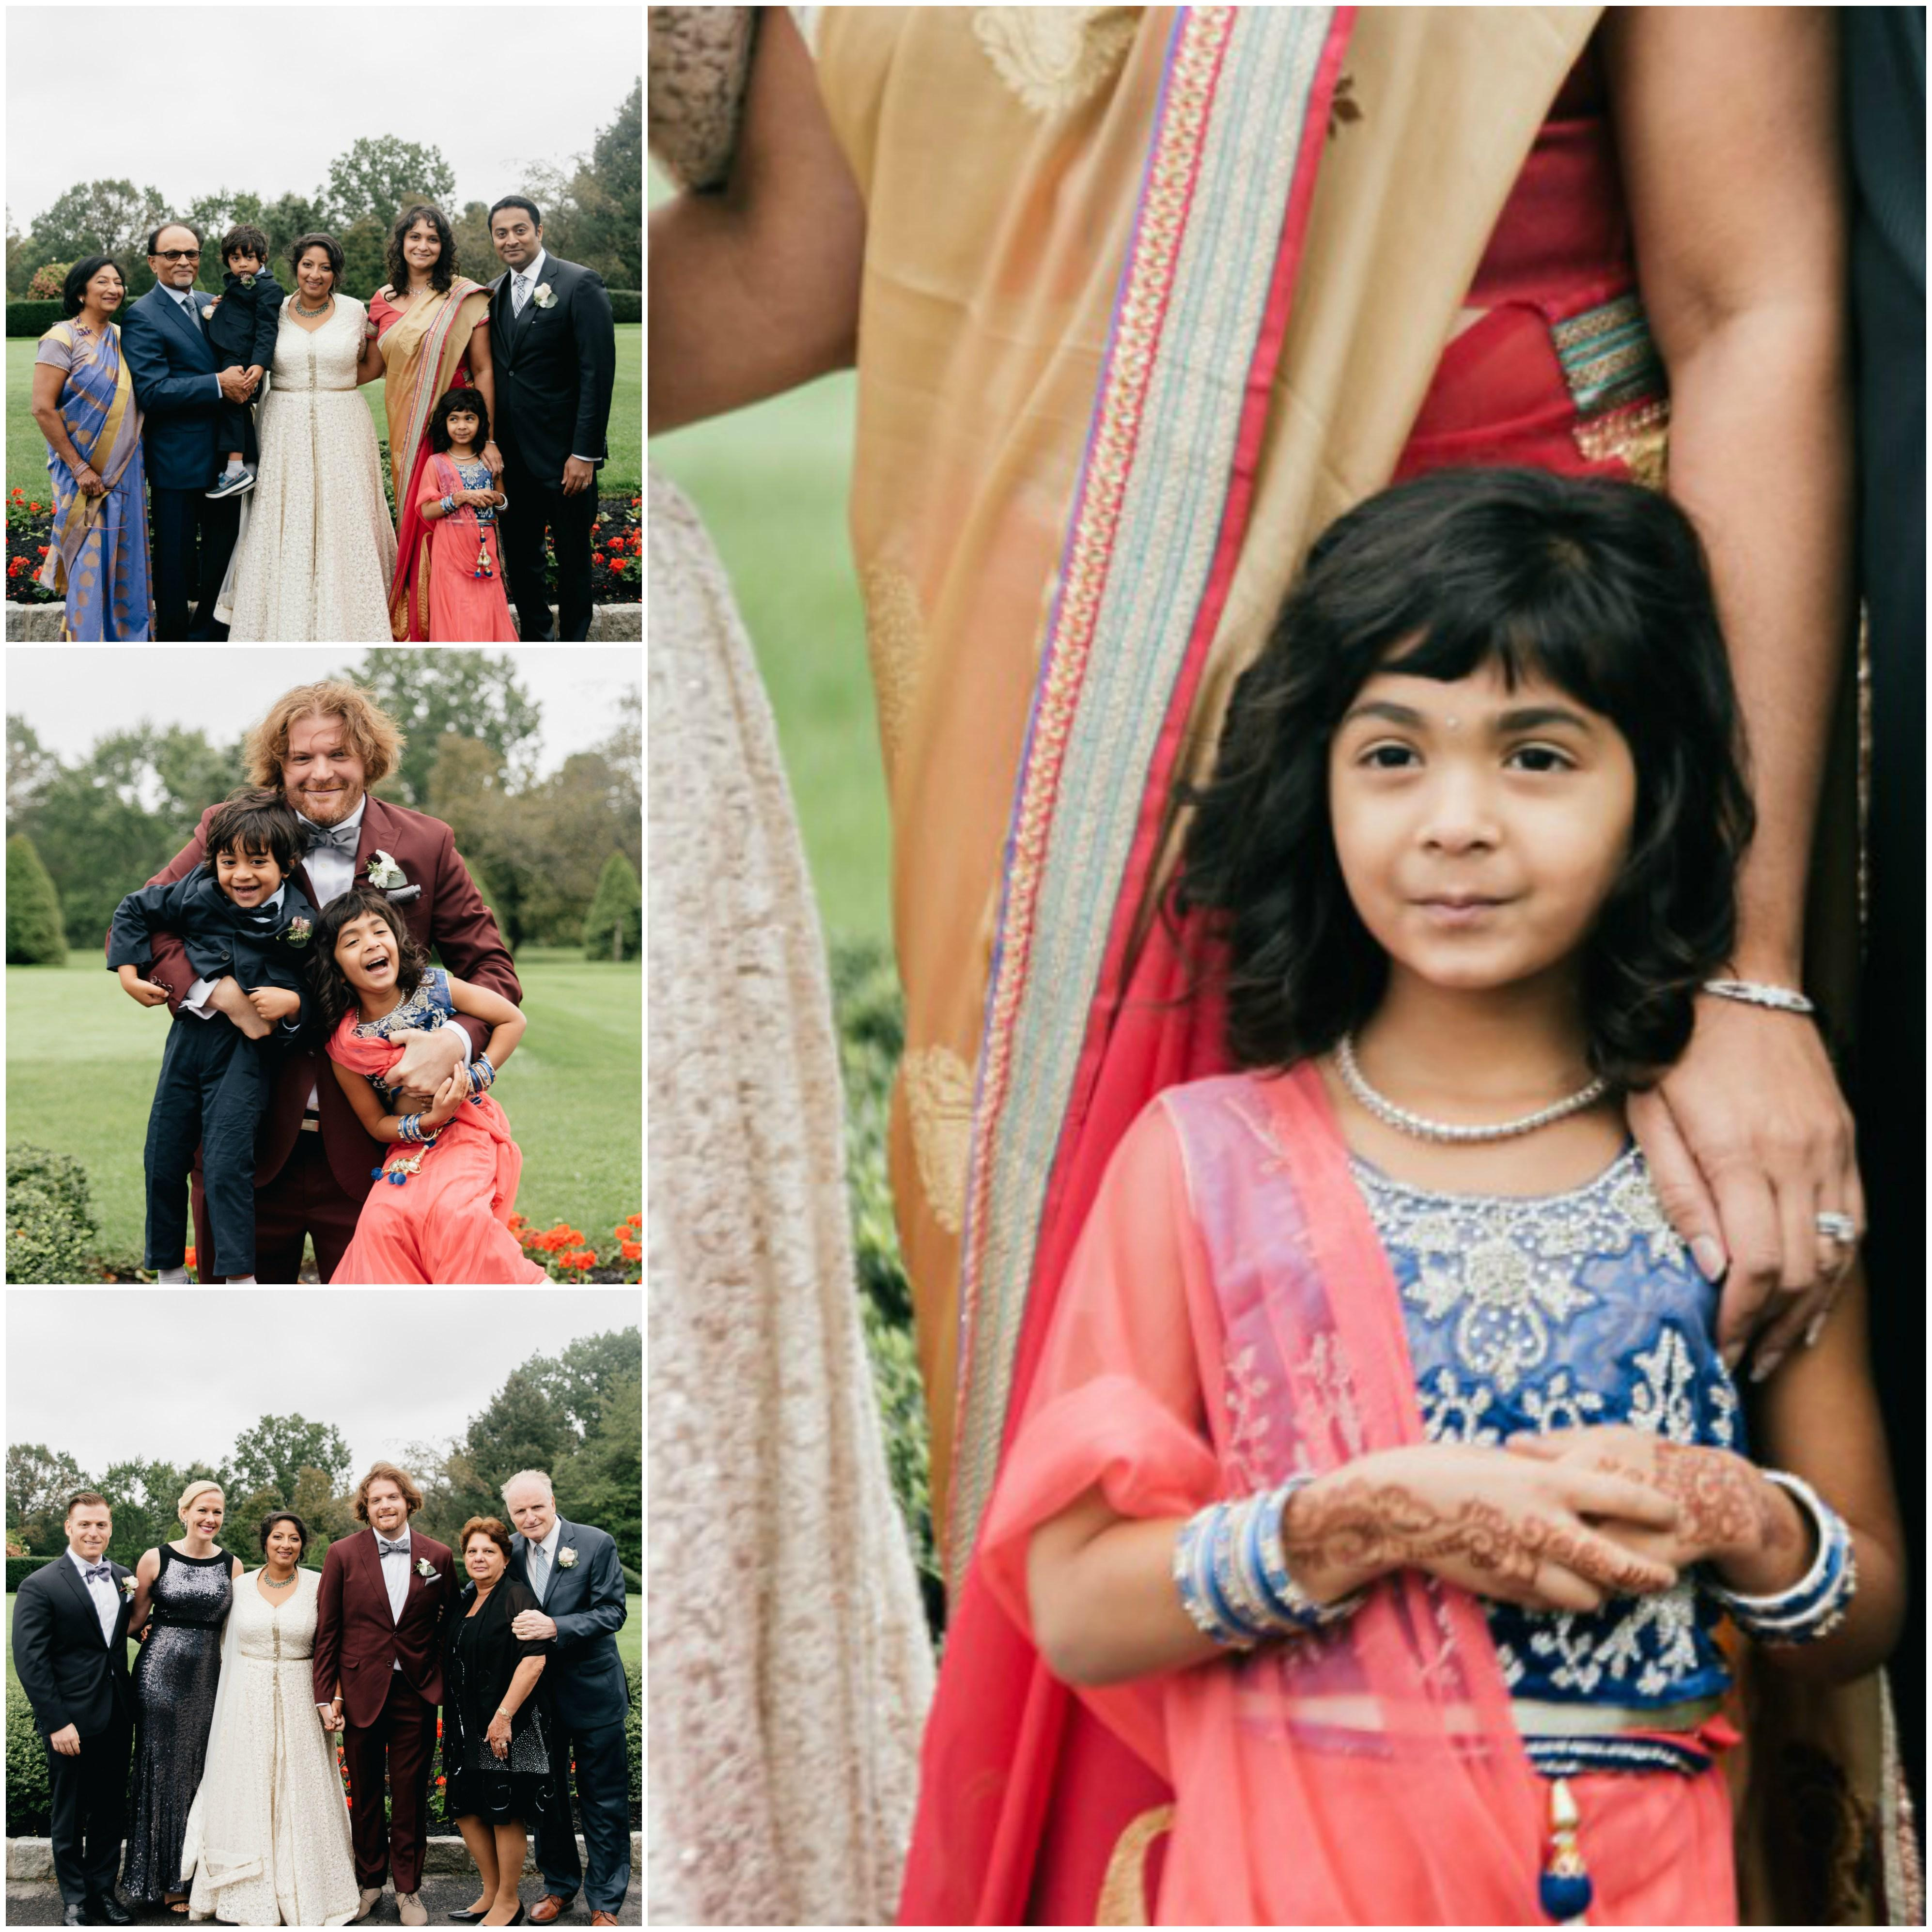 Family Wedding Flower Girl Philadelphia Wedding The Yardley Country Club Papertini Floral Event Design